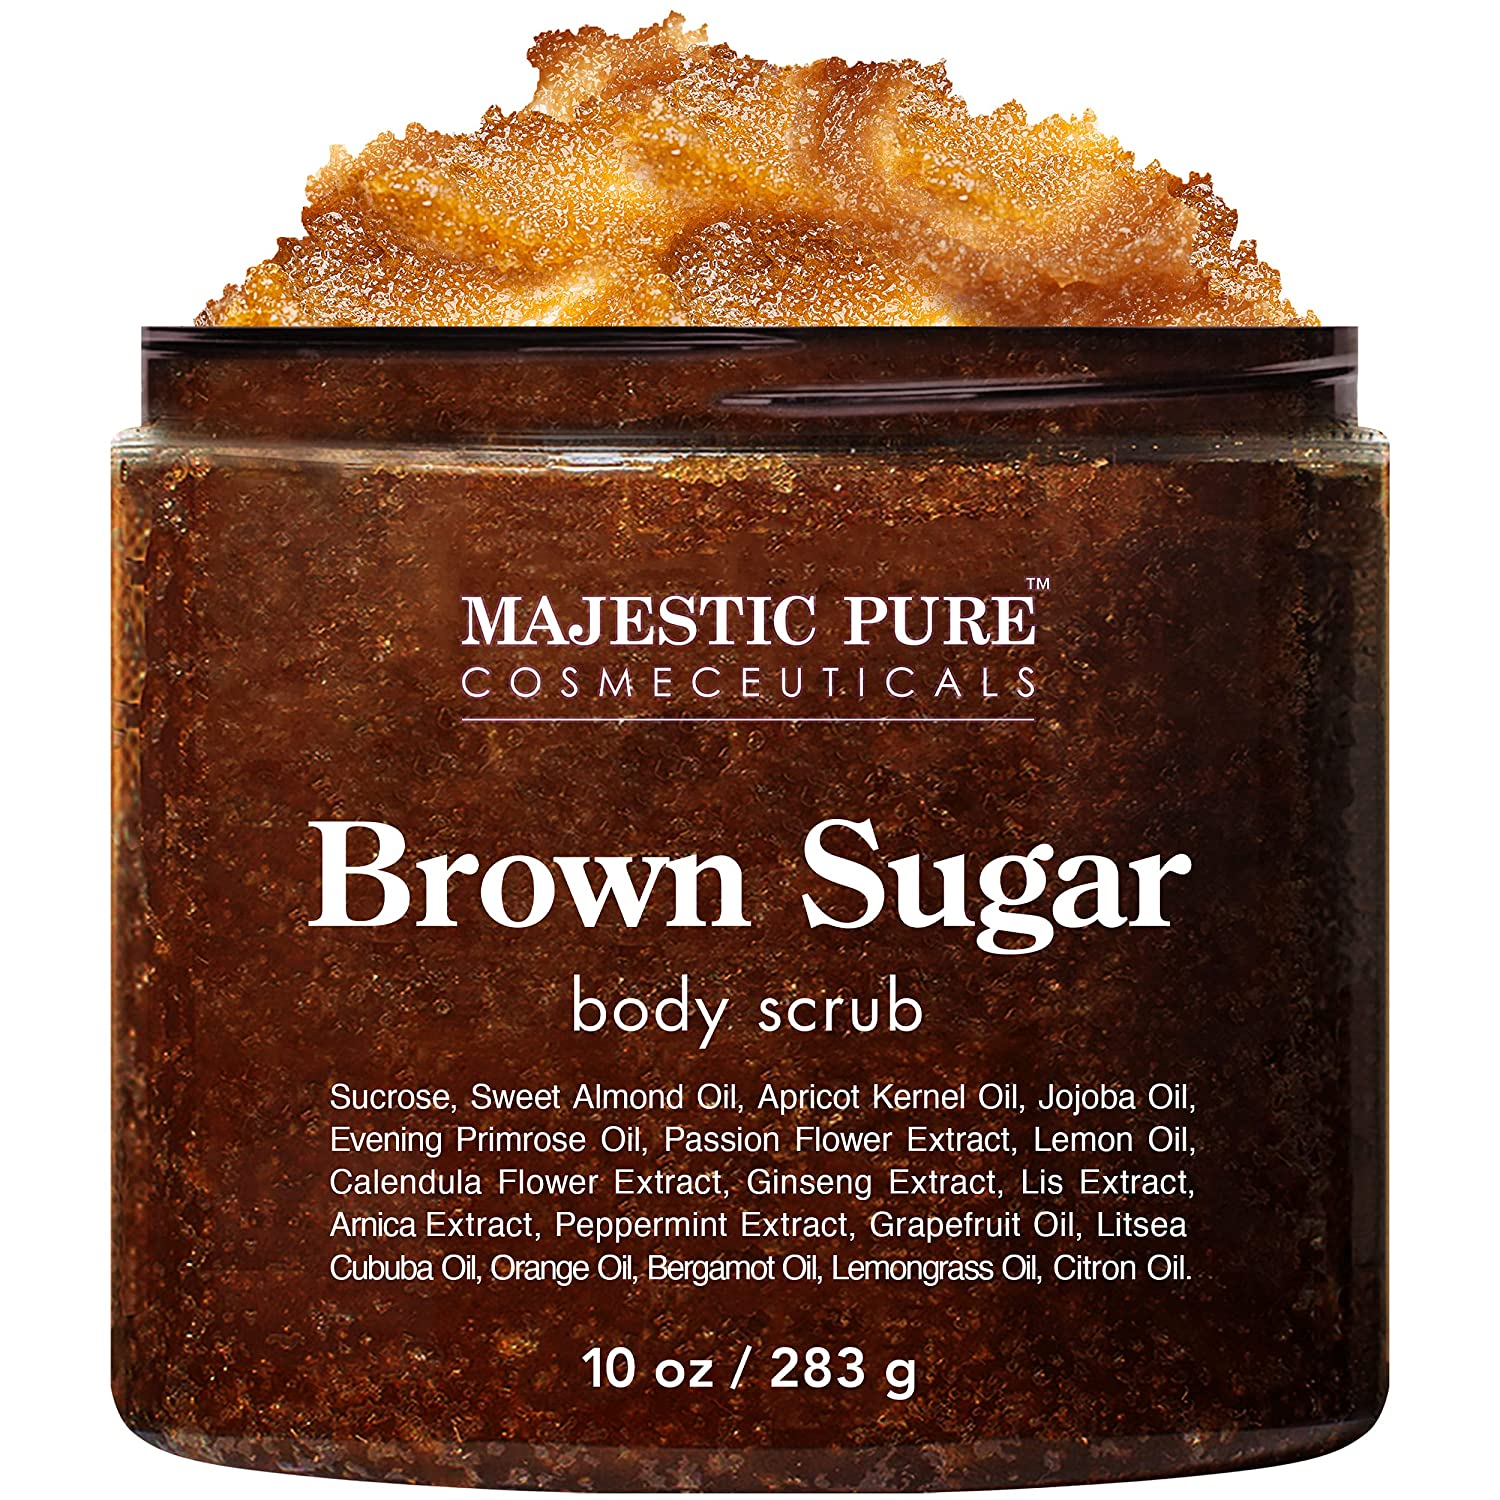 Brown Sugar Import Body Complete Free Shipping Scrub for Cellulite Natural and B Exfoliation -